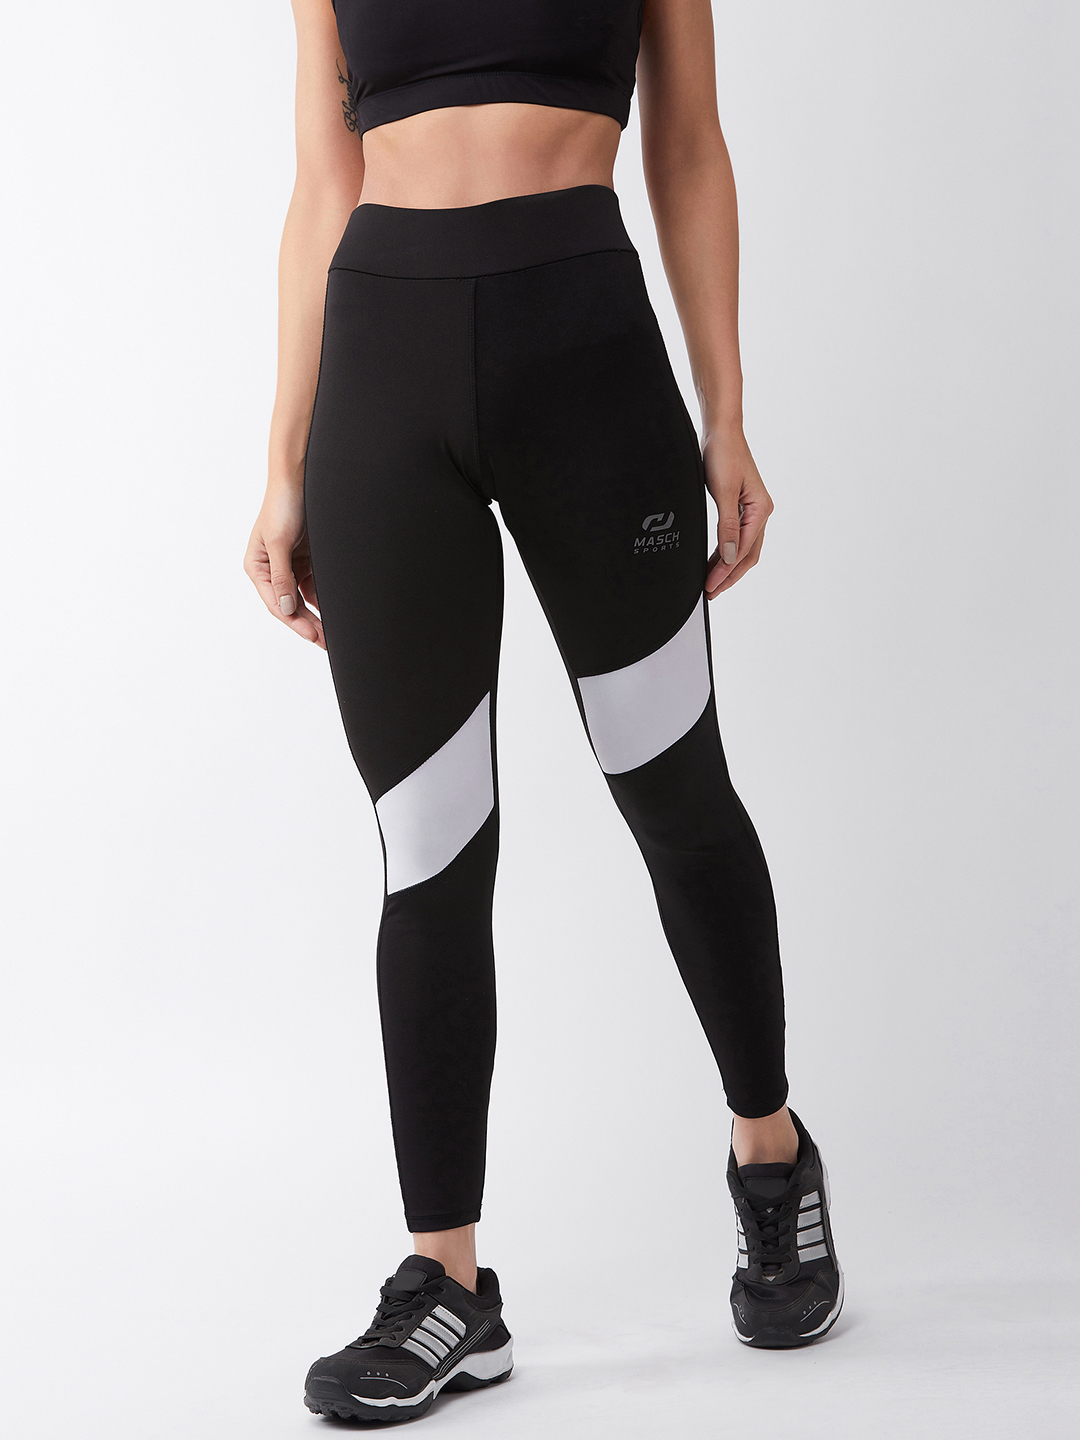 Masch Sports | Masch Sports Women's Black Solid Sports Tights with Diagonal White Panel